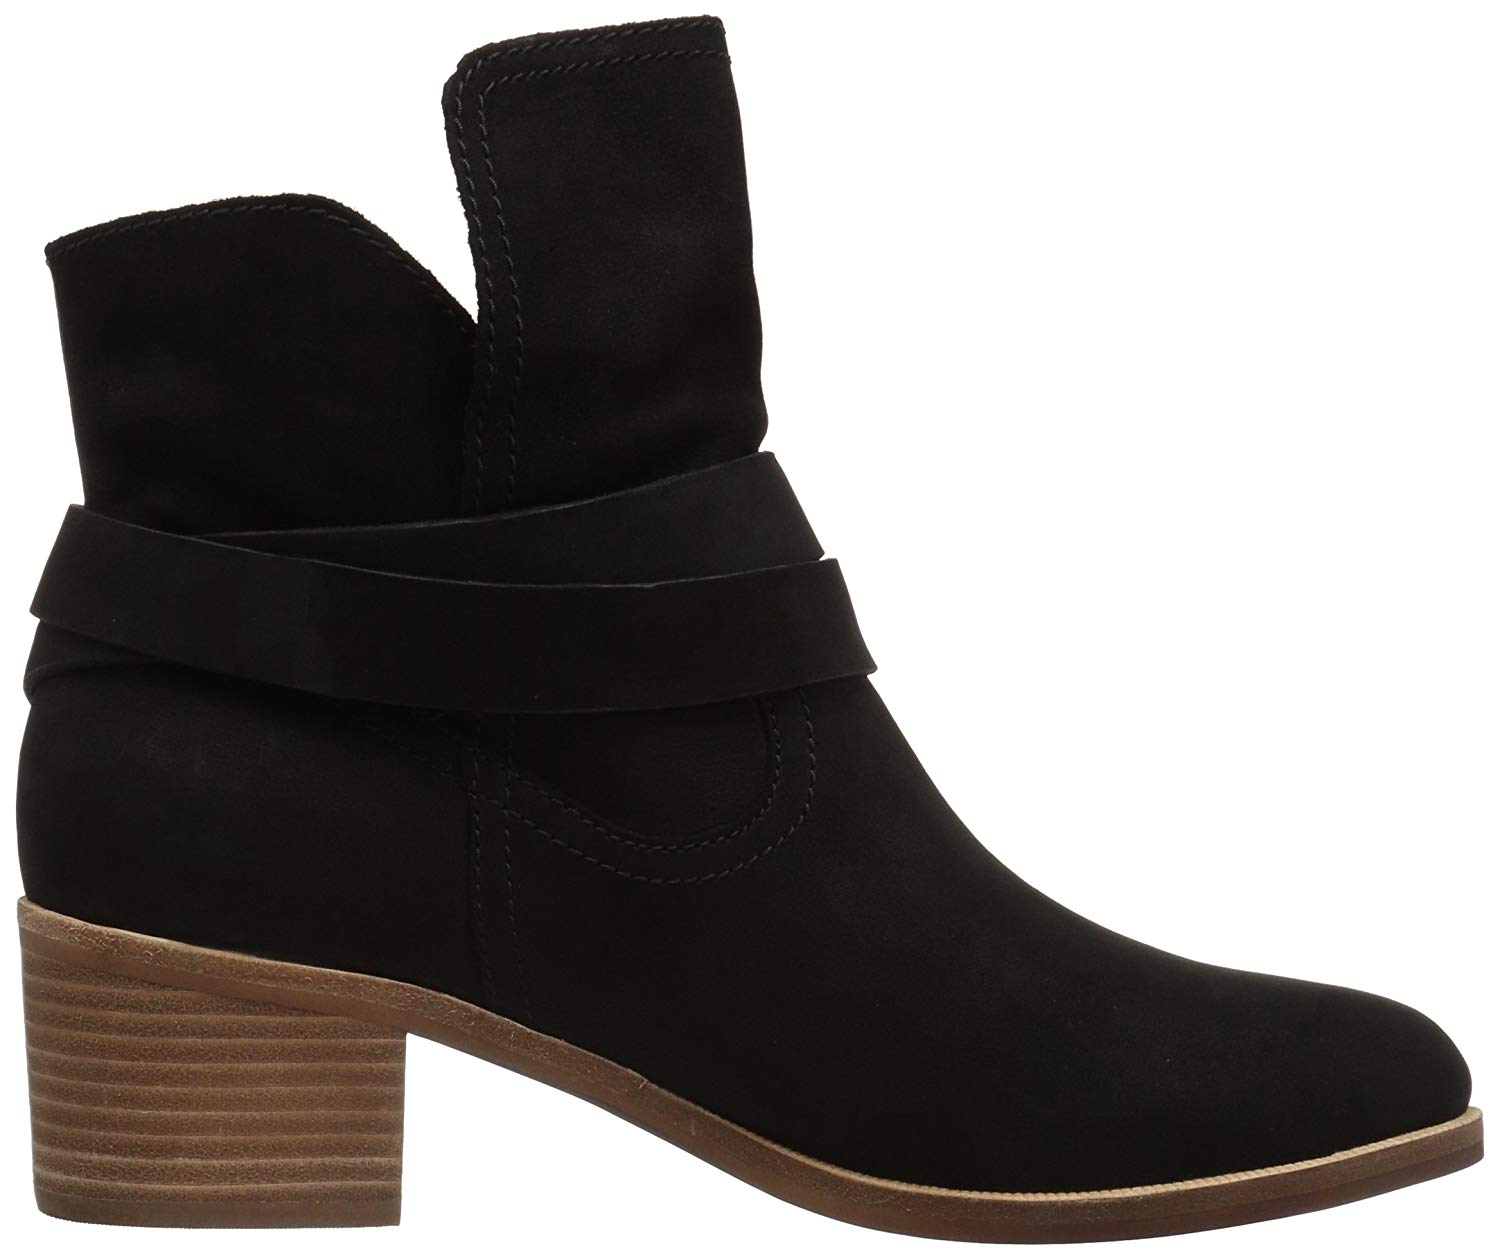 e58f555aebf Details about Ugg Australia Womens Elora Leather Almond Toe Ankle Fashion  Boots